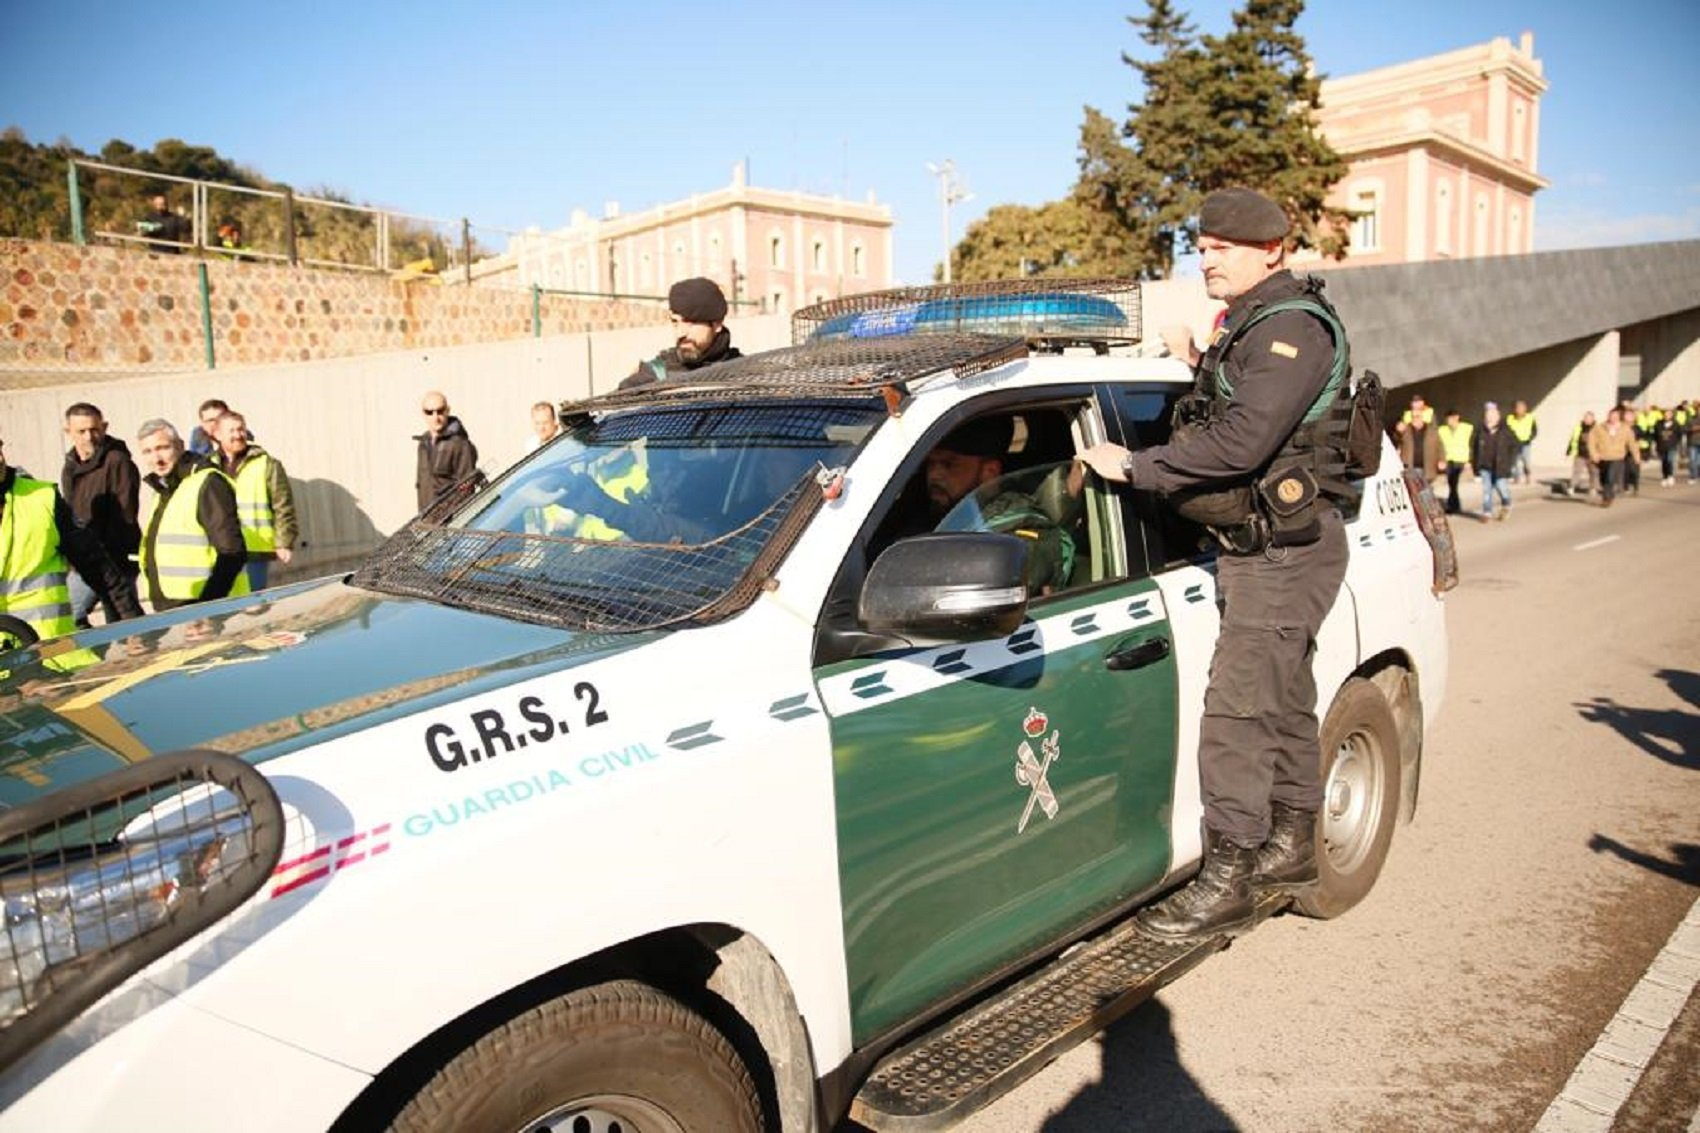 guardia civil port barcelona taxi el nacional sergi alcazar